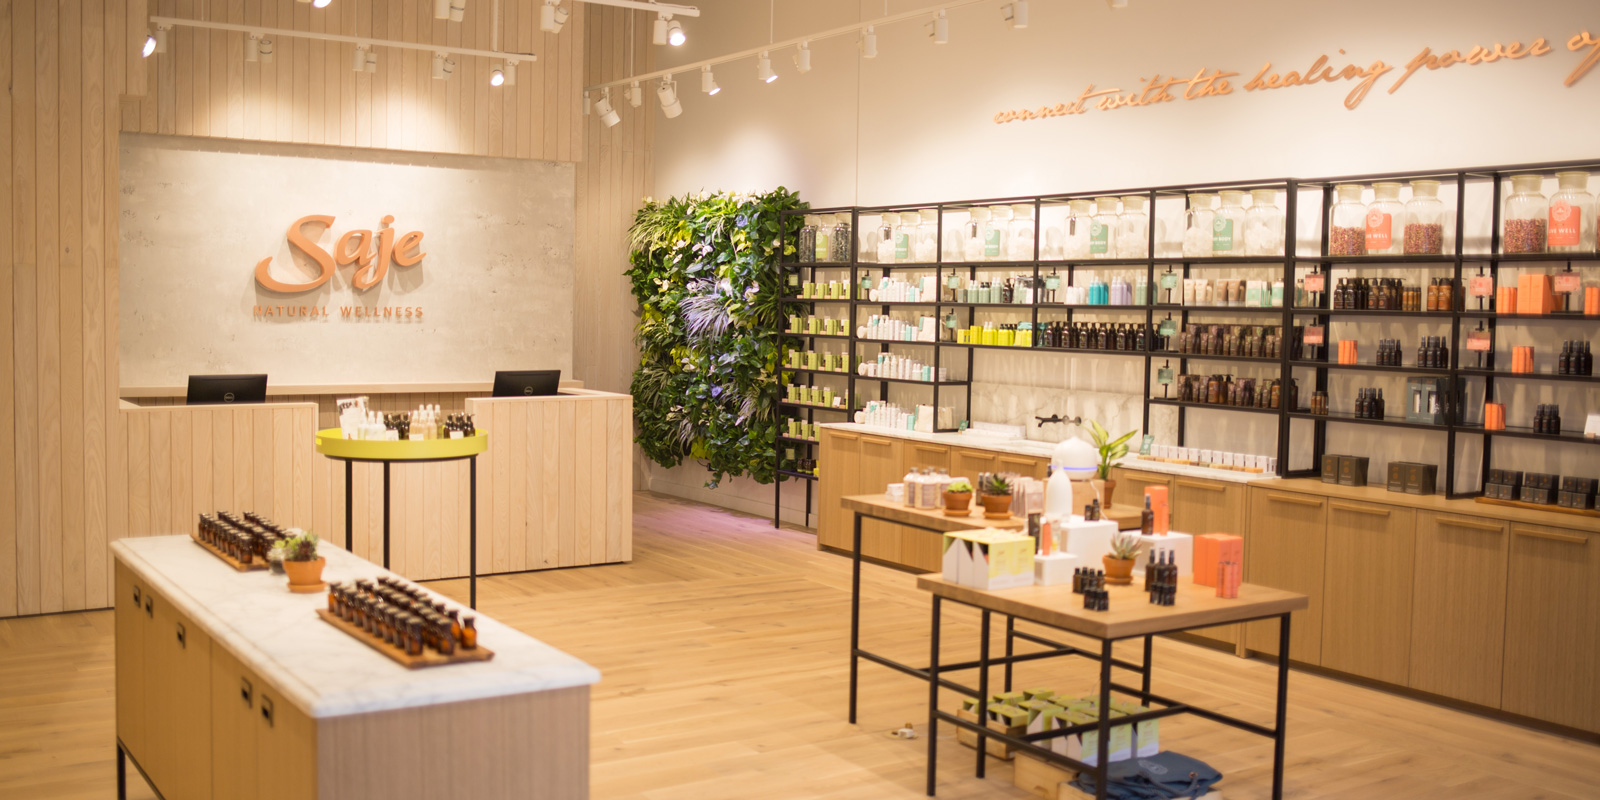 Saje Natural Wellness to open first Orange County store at